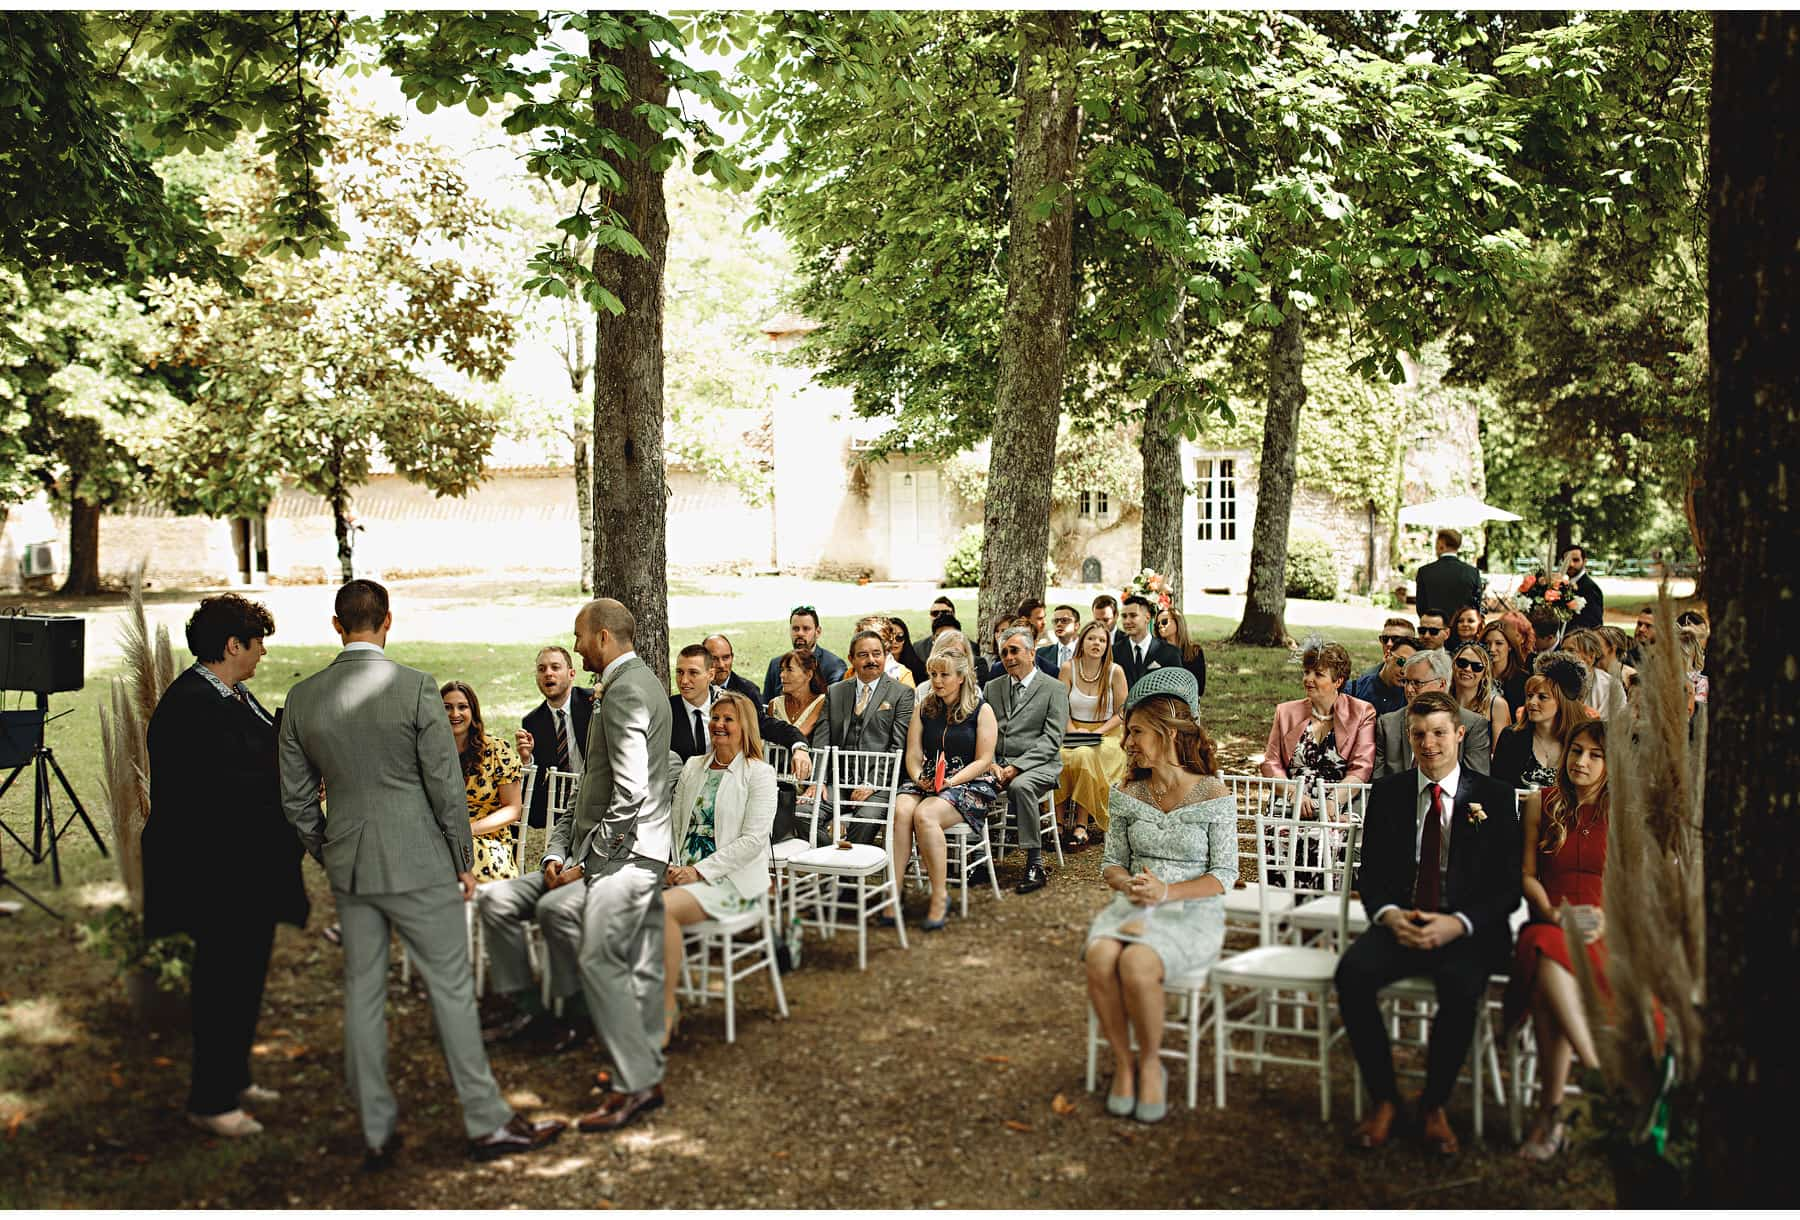 the wedding in the dordogne, south of france